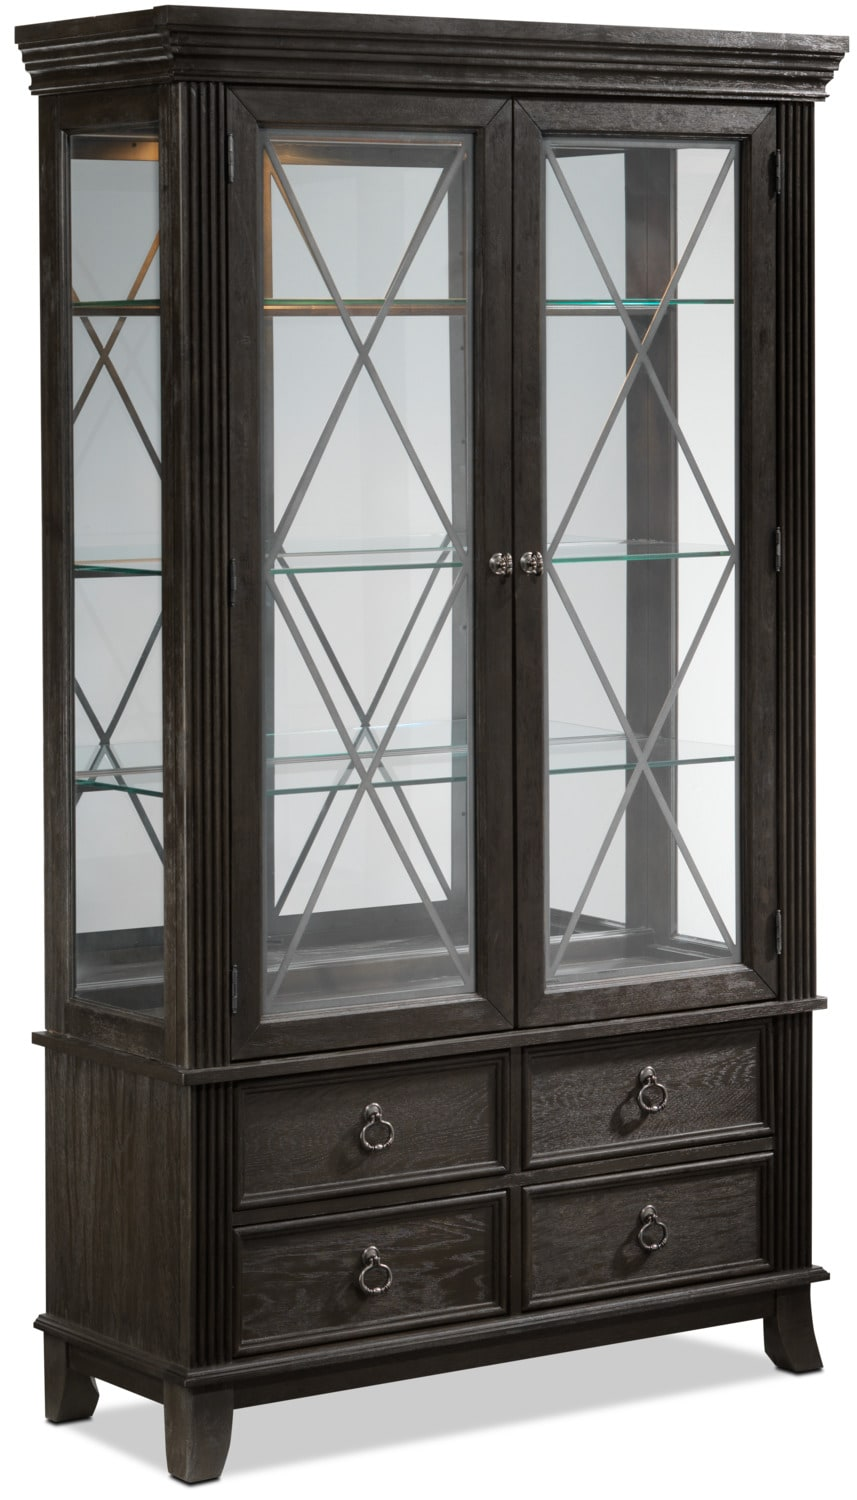 Victoria 2-Piece China Cabinet - Grey